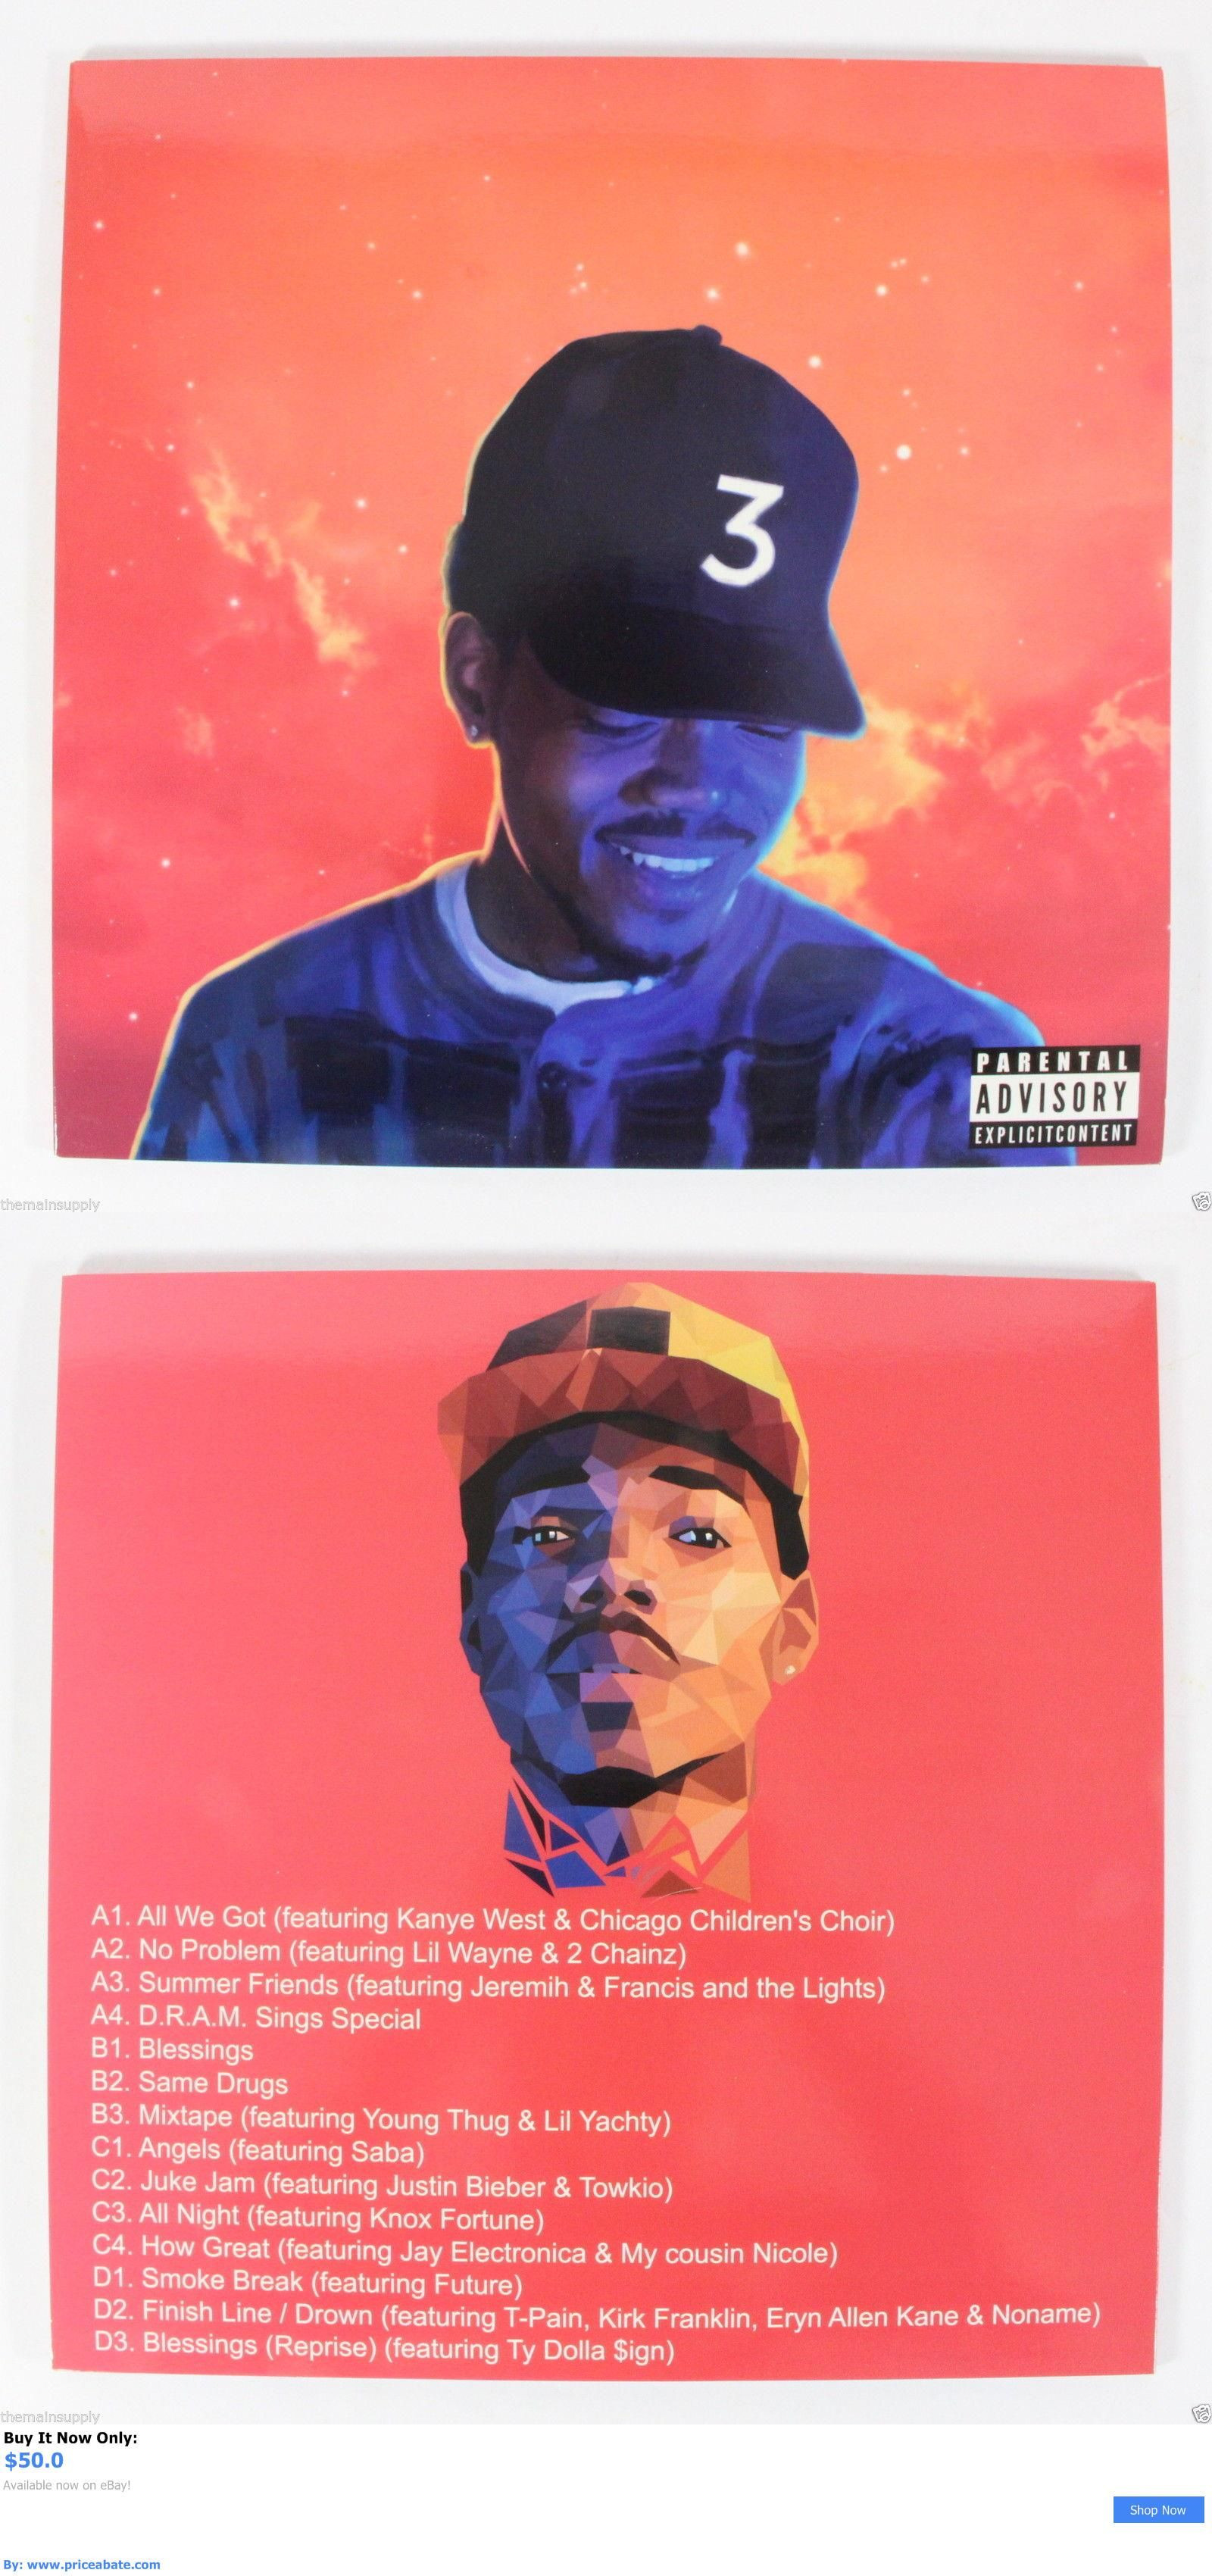 Coloring Book Chance The Rapper Vinyl  Music Albums Chance The Rapper Coloring Book [2Lp